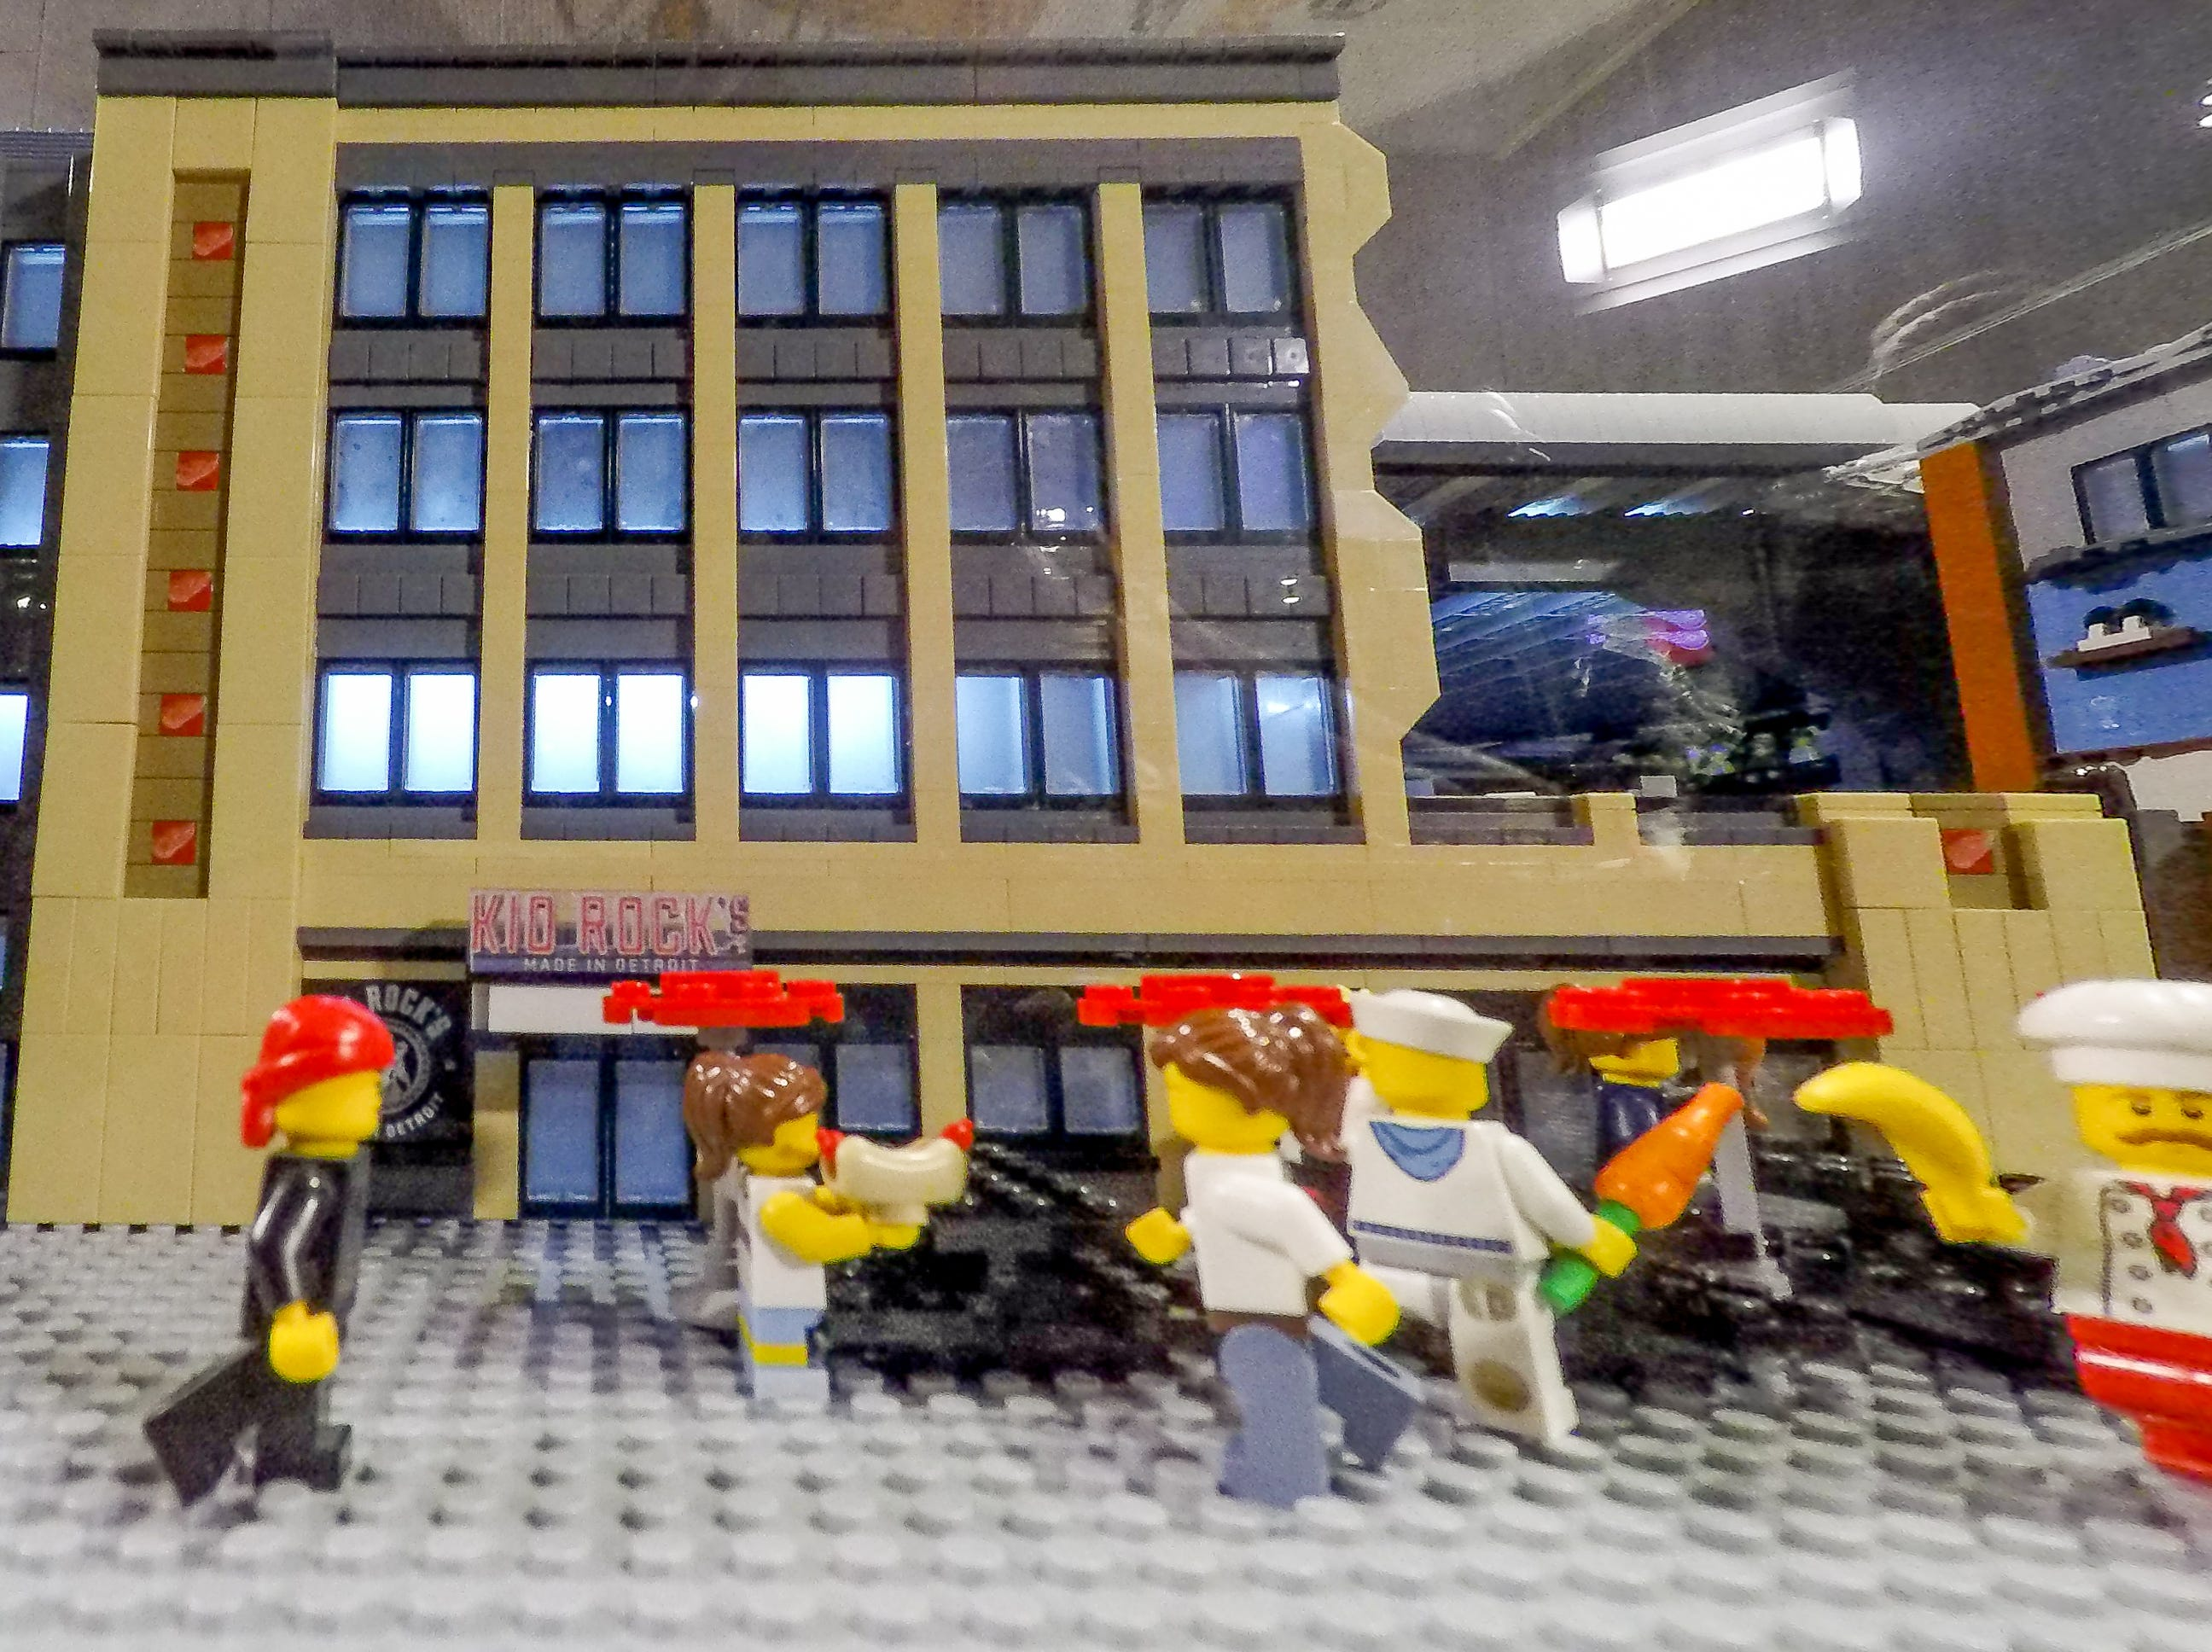 Kid Rock's Made in Detroit restaurant, represented in LEGO.